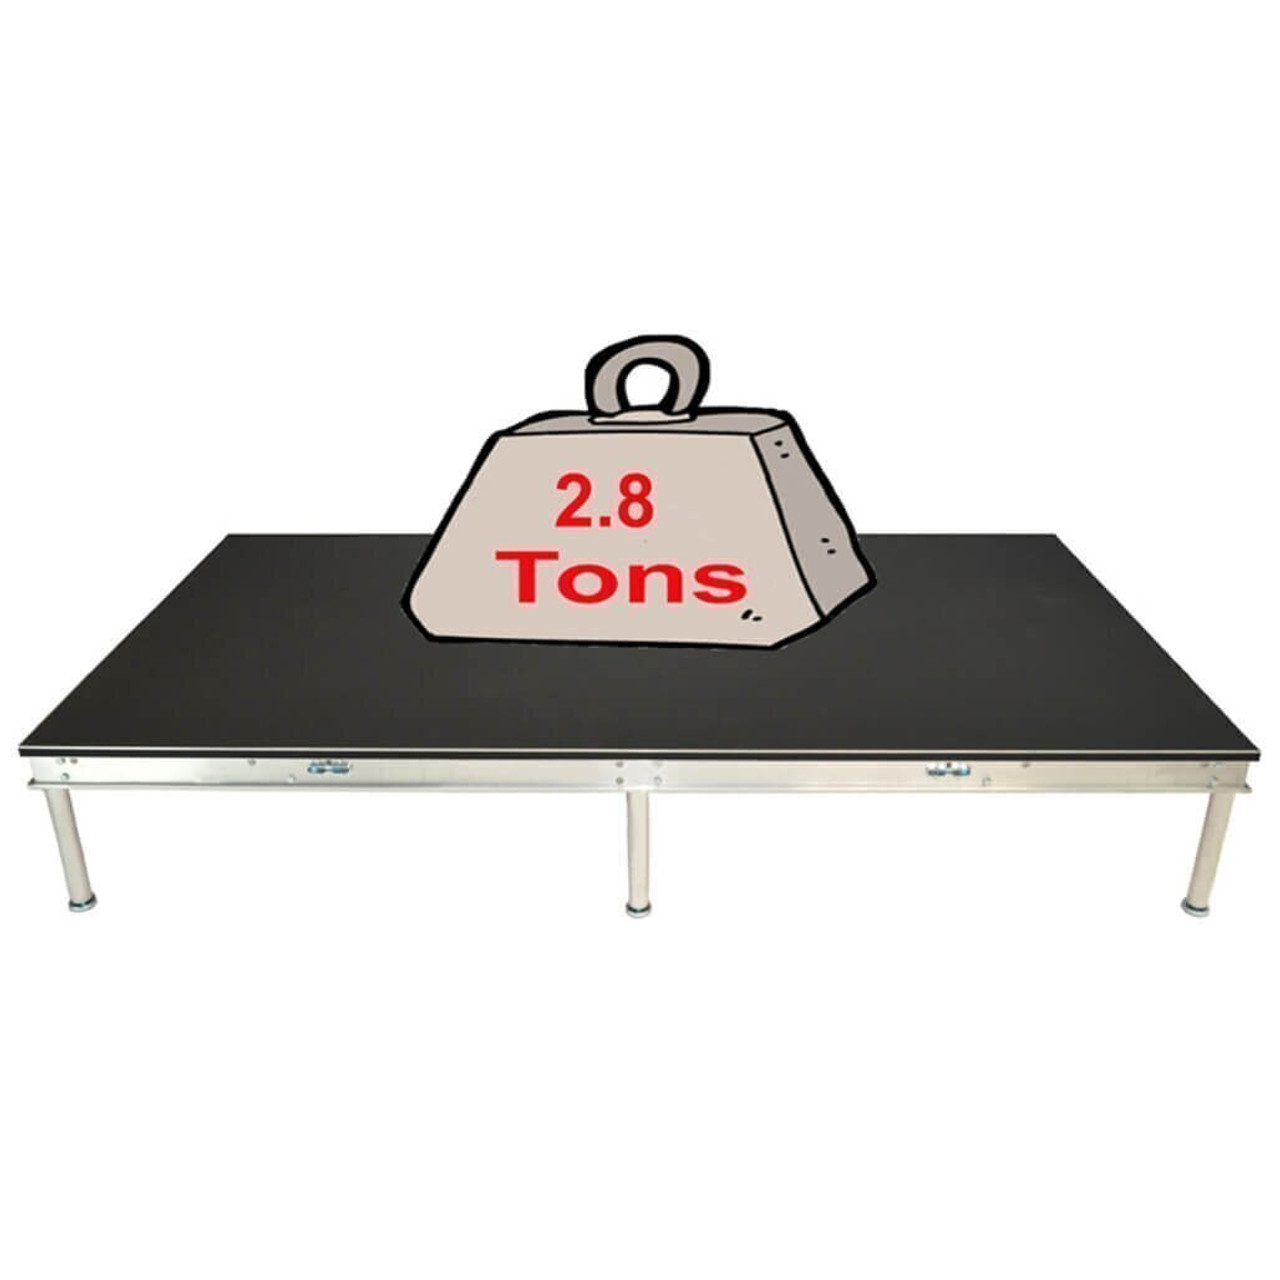 Top rated Quik Stage 4' x 36' High Portable Stage Package with Black Polyvinyl Non-Skid Surface. Additional Heights and Surfaces Available - Holds 2.8 tons per 4 x 8 or 1.4 tons per 4 x 4 when spread out evenly